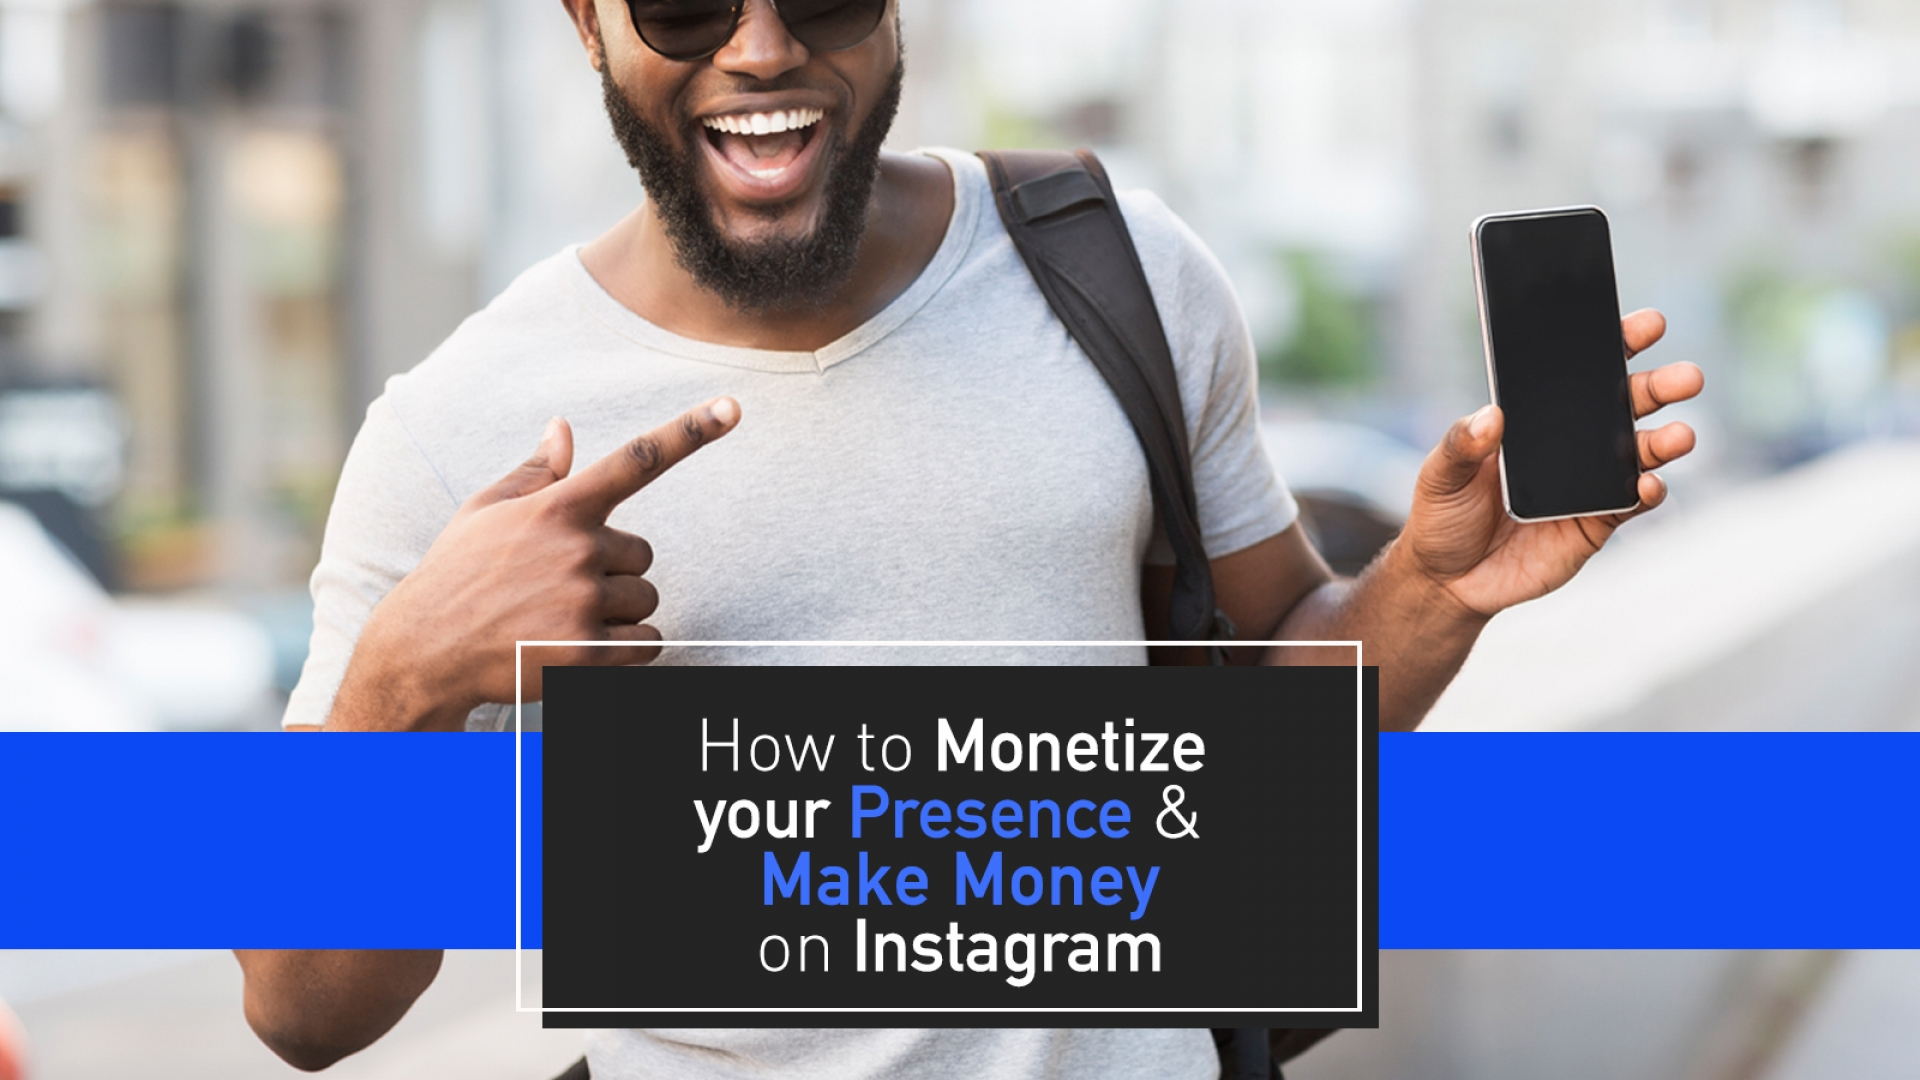 How to Monetize your Presence & Make Money on Instagram